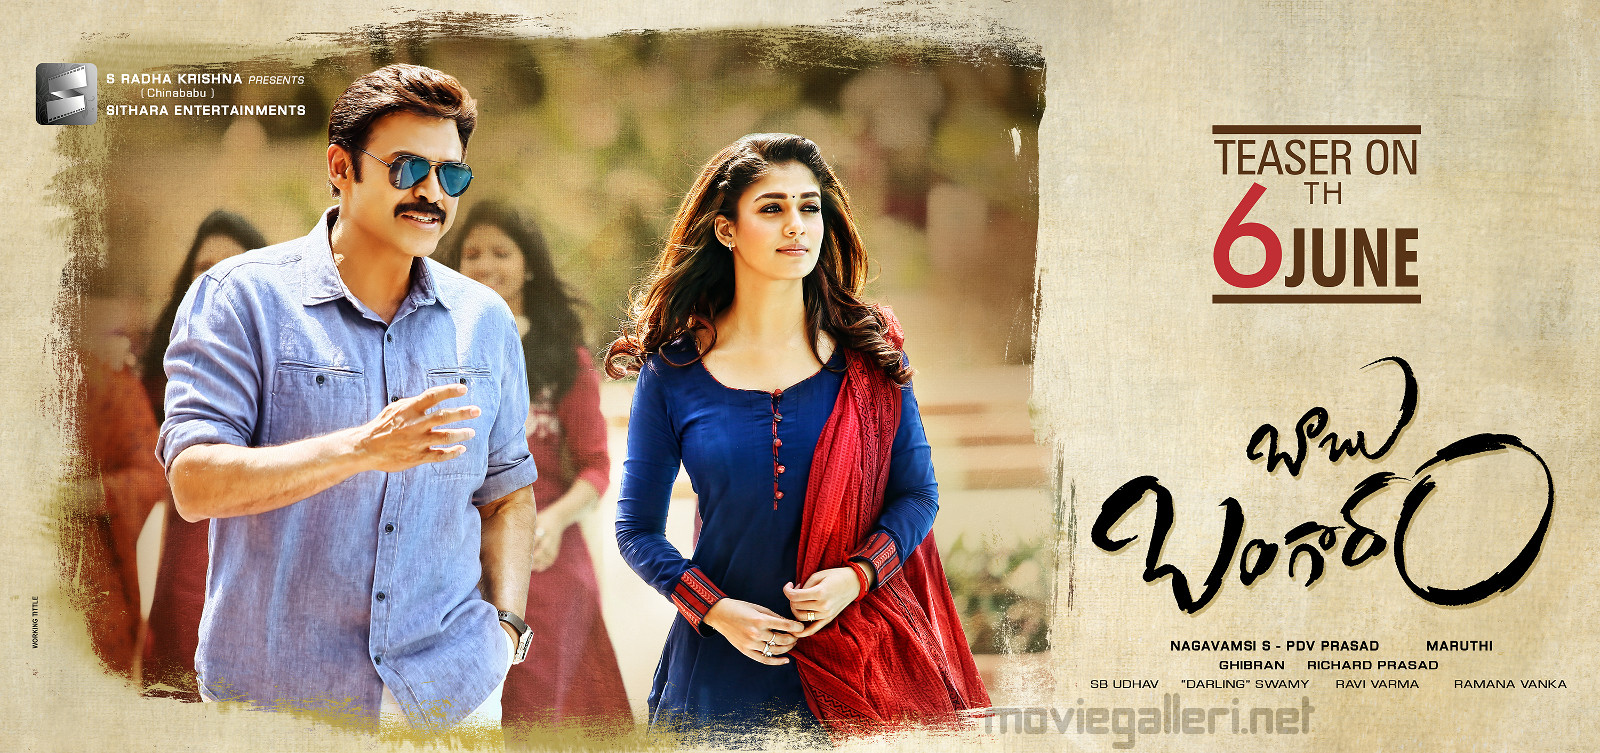 Venkatesh_Nayanthara_Babu Bangaram_Movie_Teaser_Release_June_6th_Wallpaper_5654765